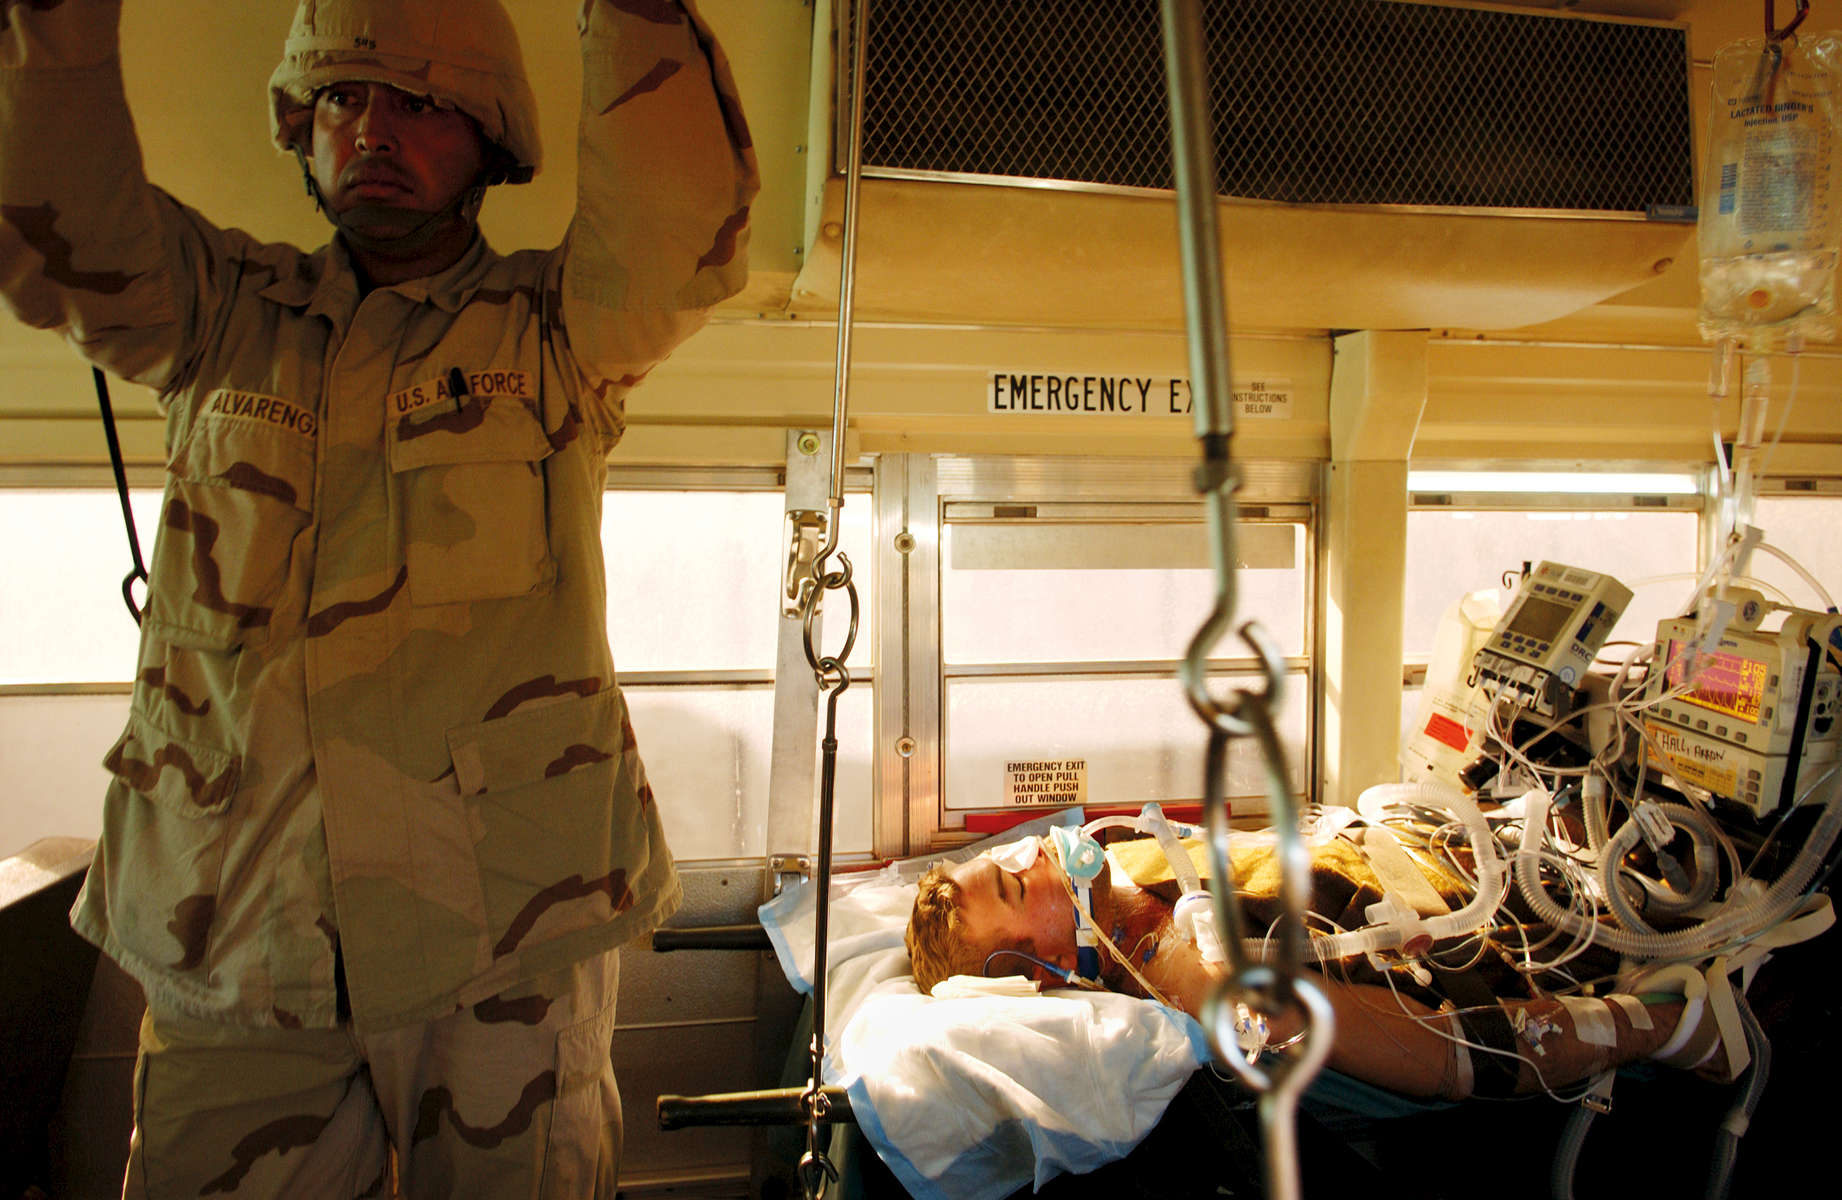 US Marines wounded in the Battle of Fallujah are treated by Navy doctors and preparedfor evacuation to Germany at the Balad Military Hospital, Iraq, November 2004.